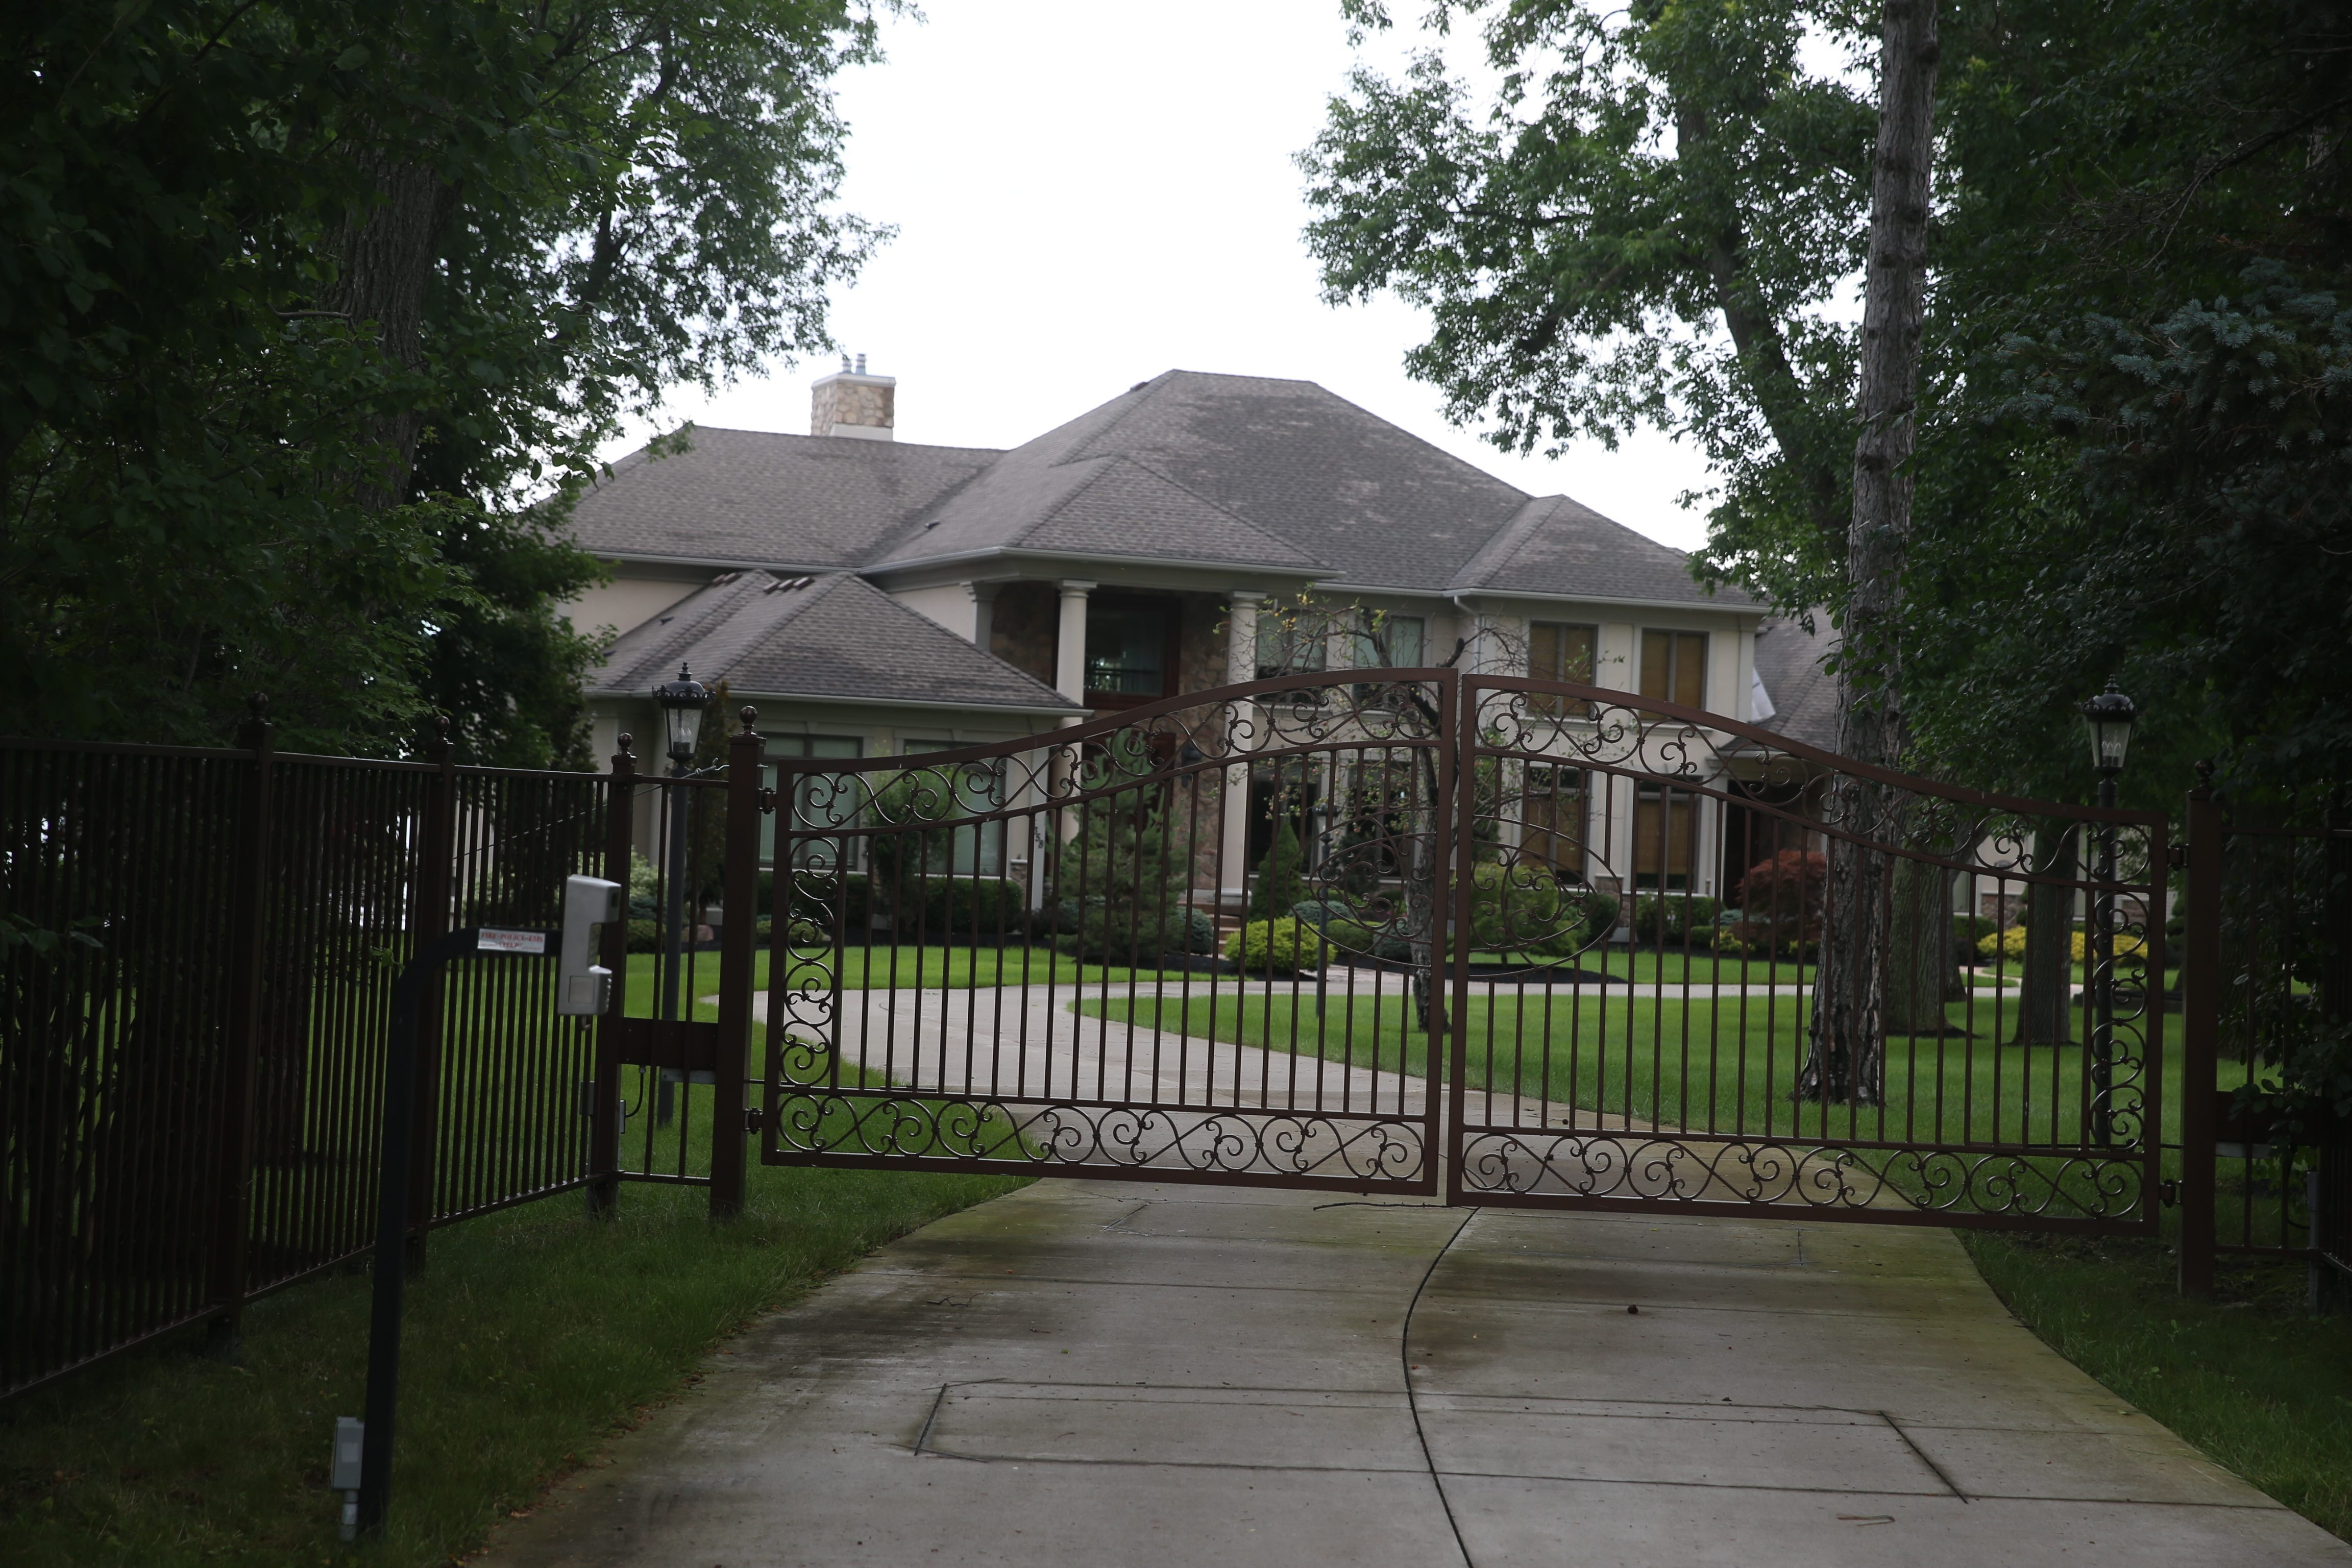 The house owned by Patrick Kane where the alleged rape took place, 5358 Old Lake Shore Road in Lake View.